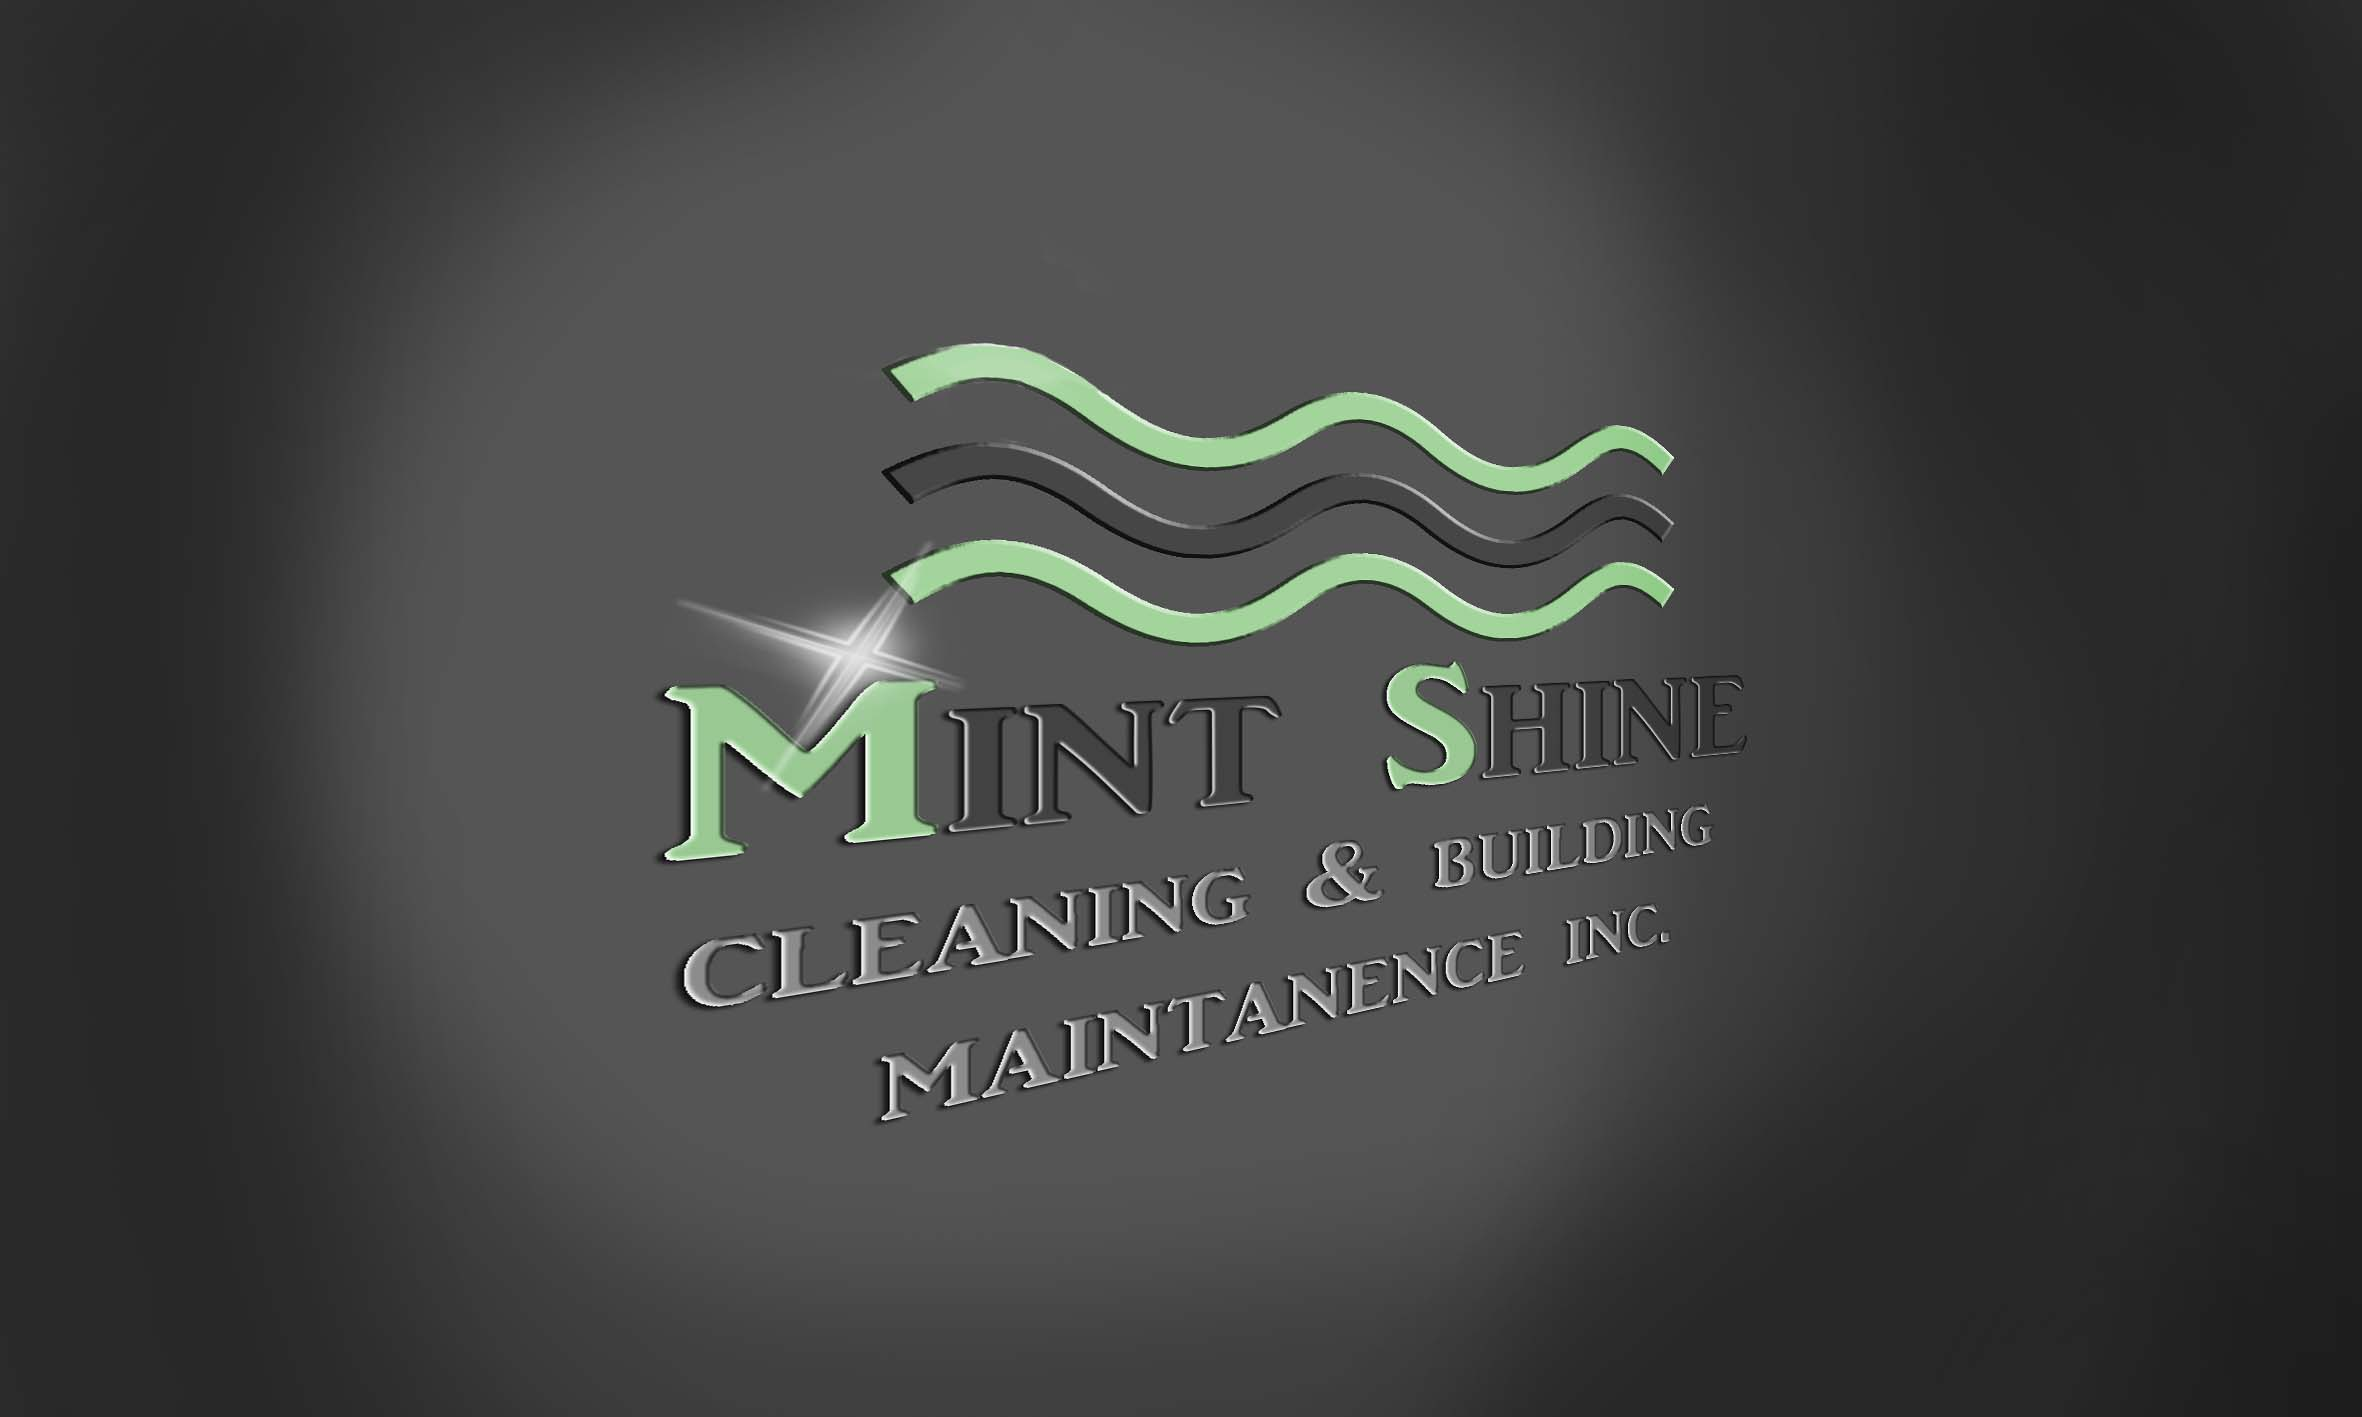 Logo Design by Daniella Eisenberg - Entry No. 13 in the Logo Design Contest New Logo Design for mintSHINE cleaning and building maintenance.